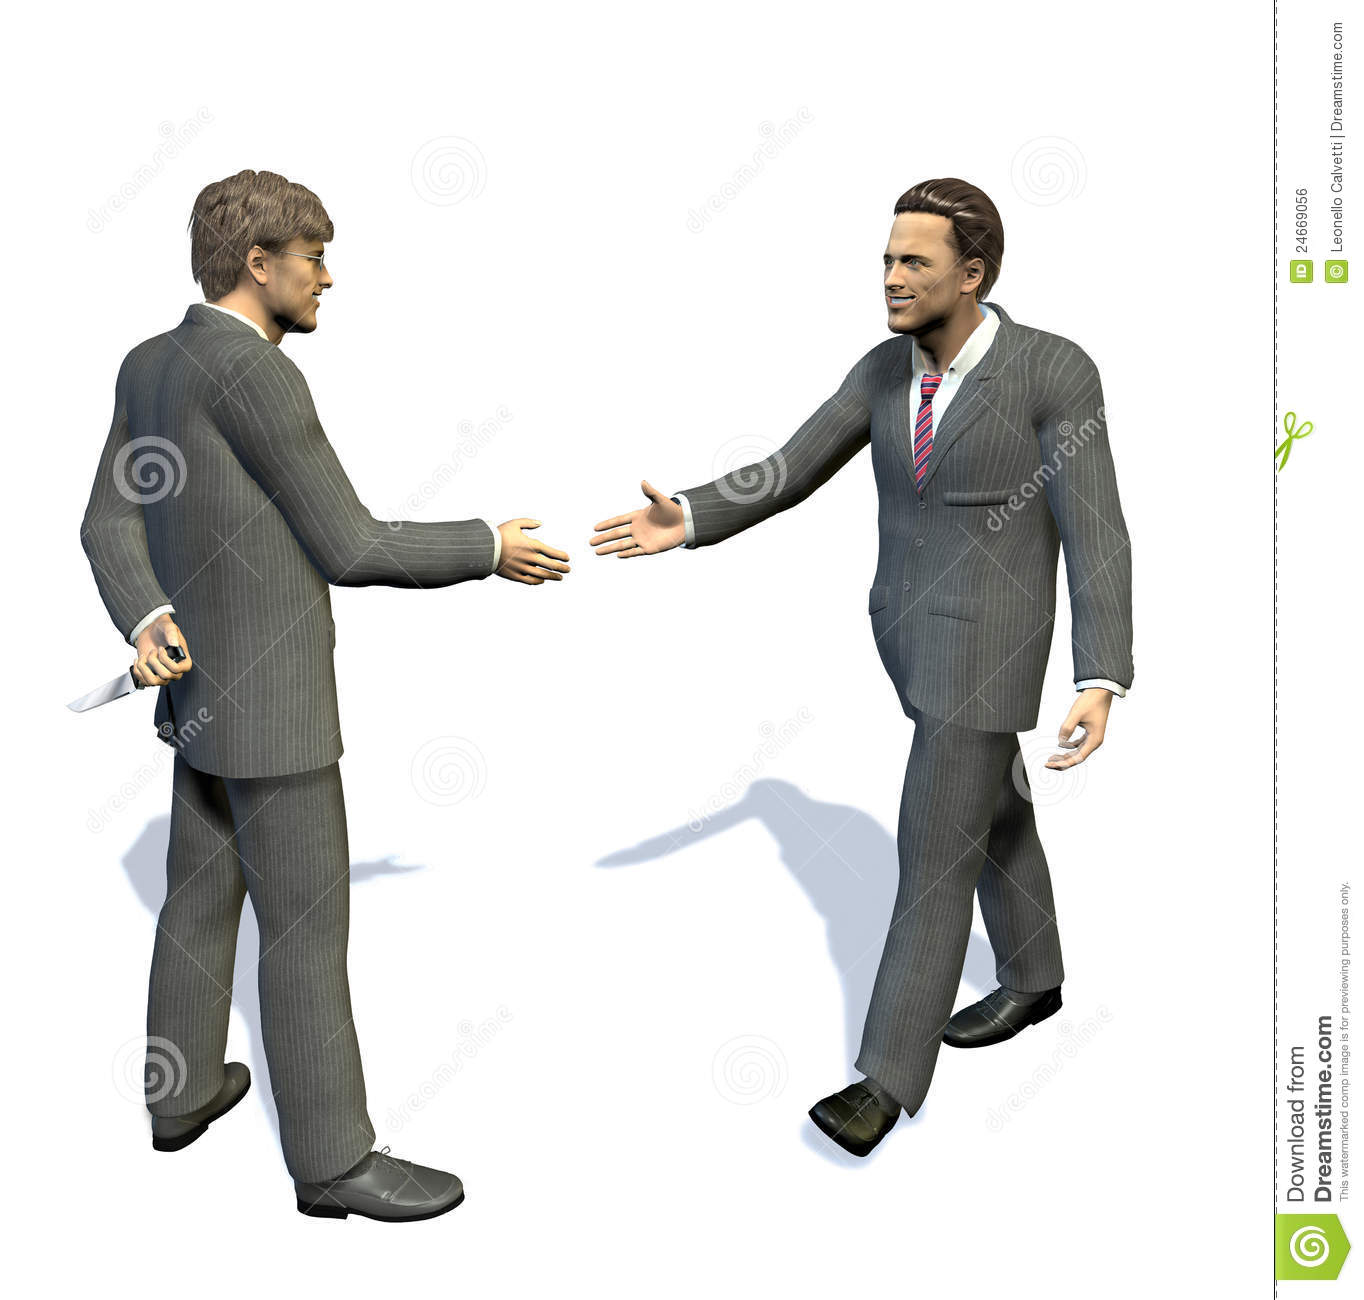 Smiling Hand Shake Clipart - Clipart Kid